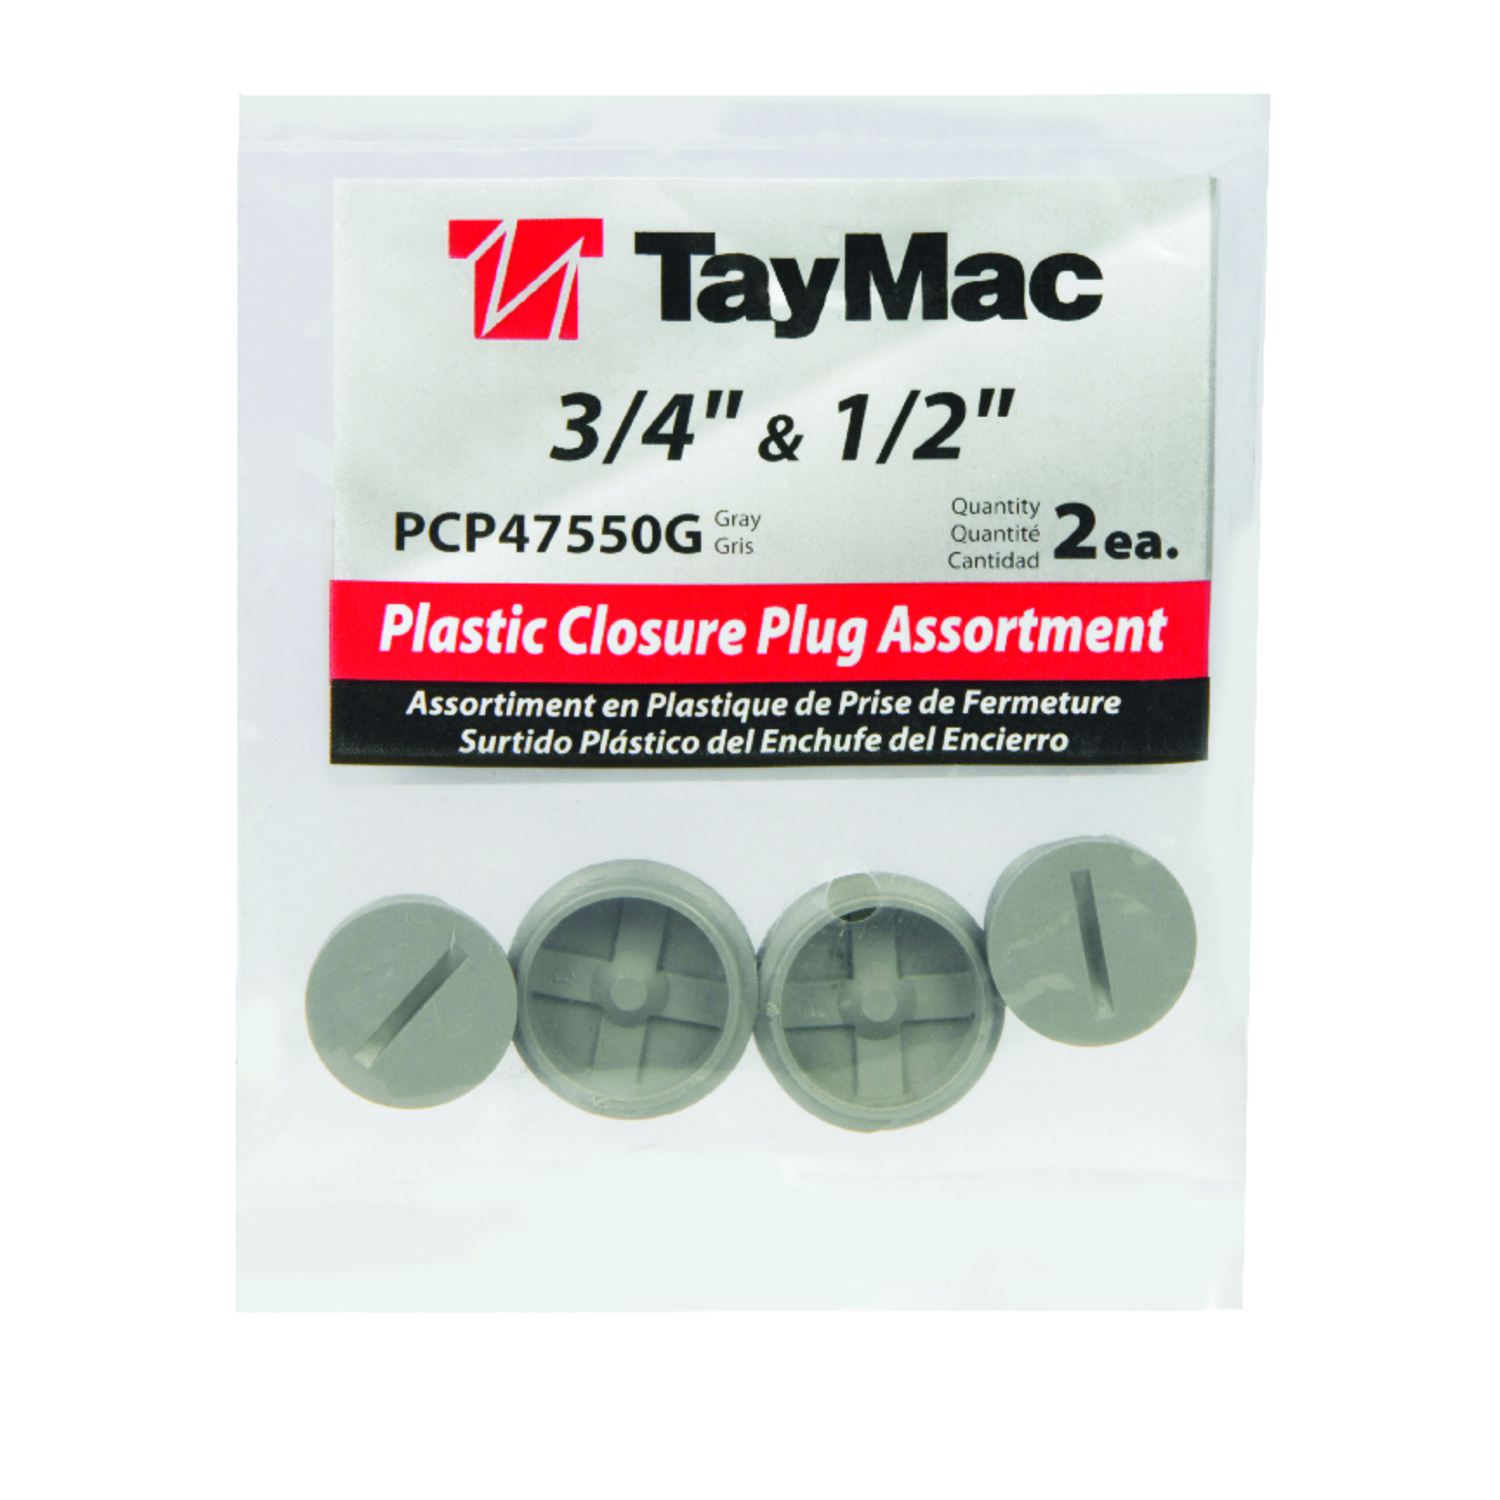 TayMac  Round  Plastic  Closure Plug  For Closure of Unused Box Outlets